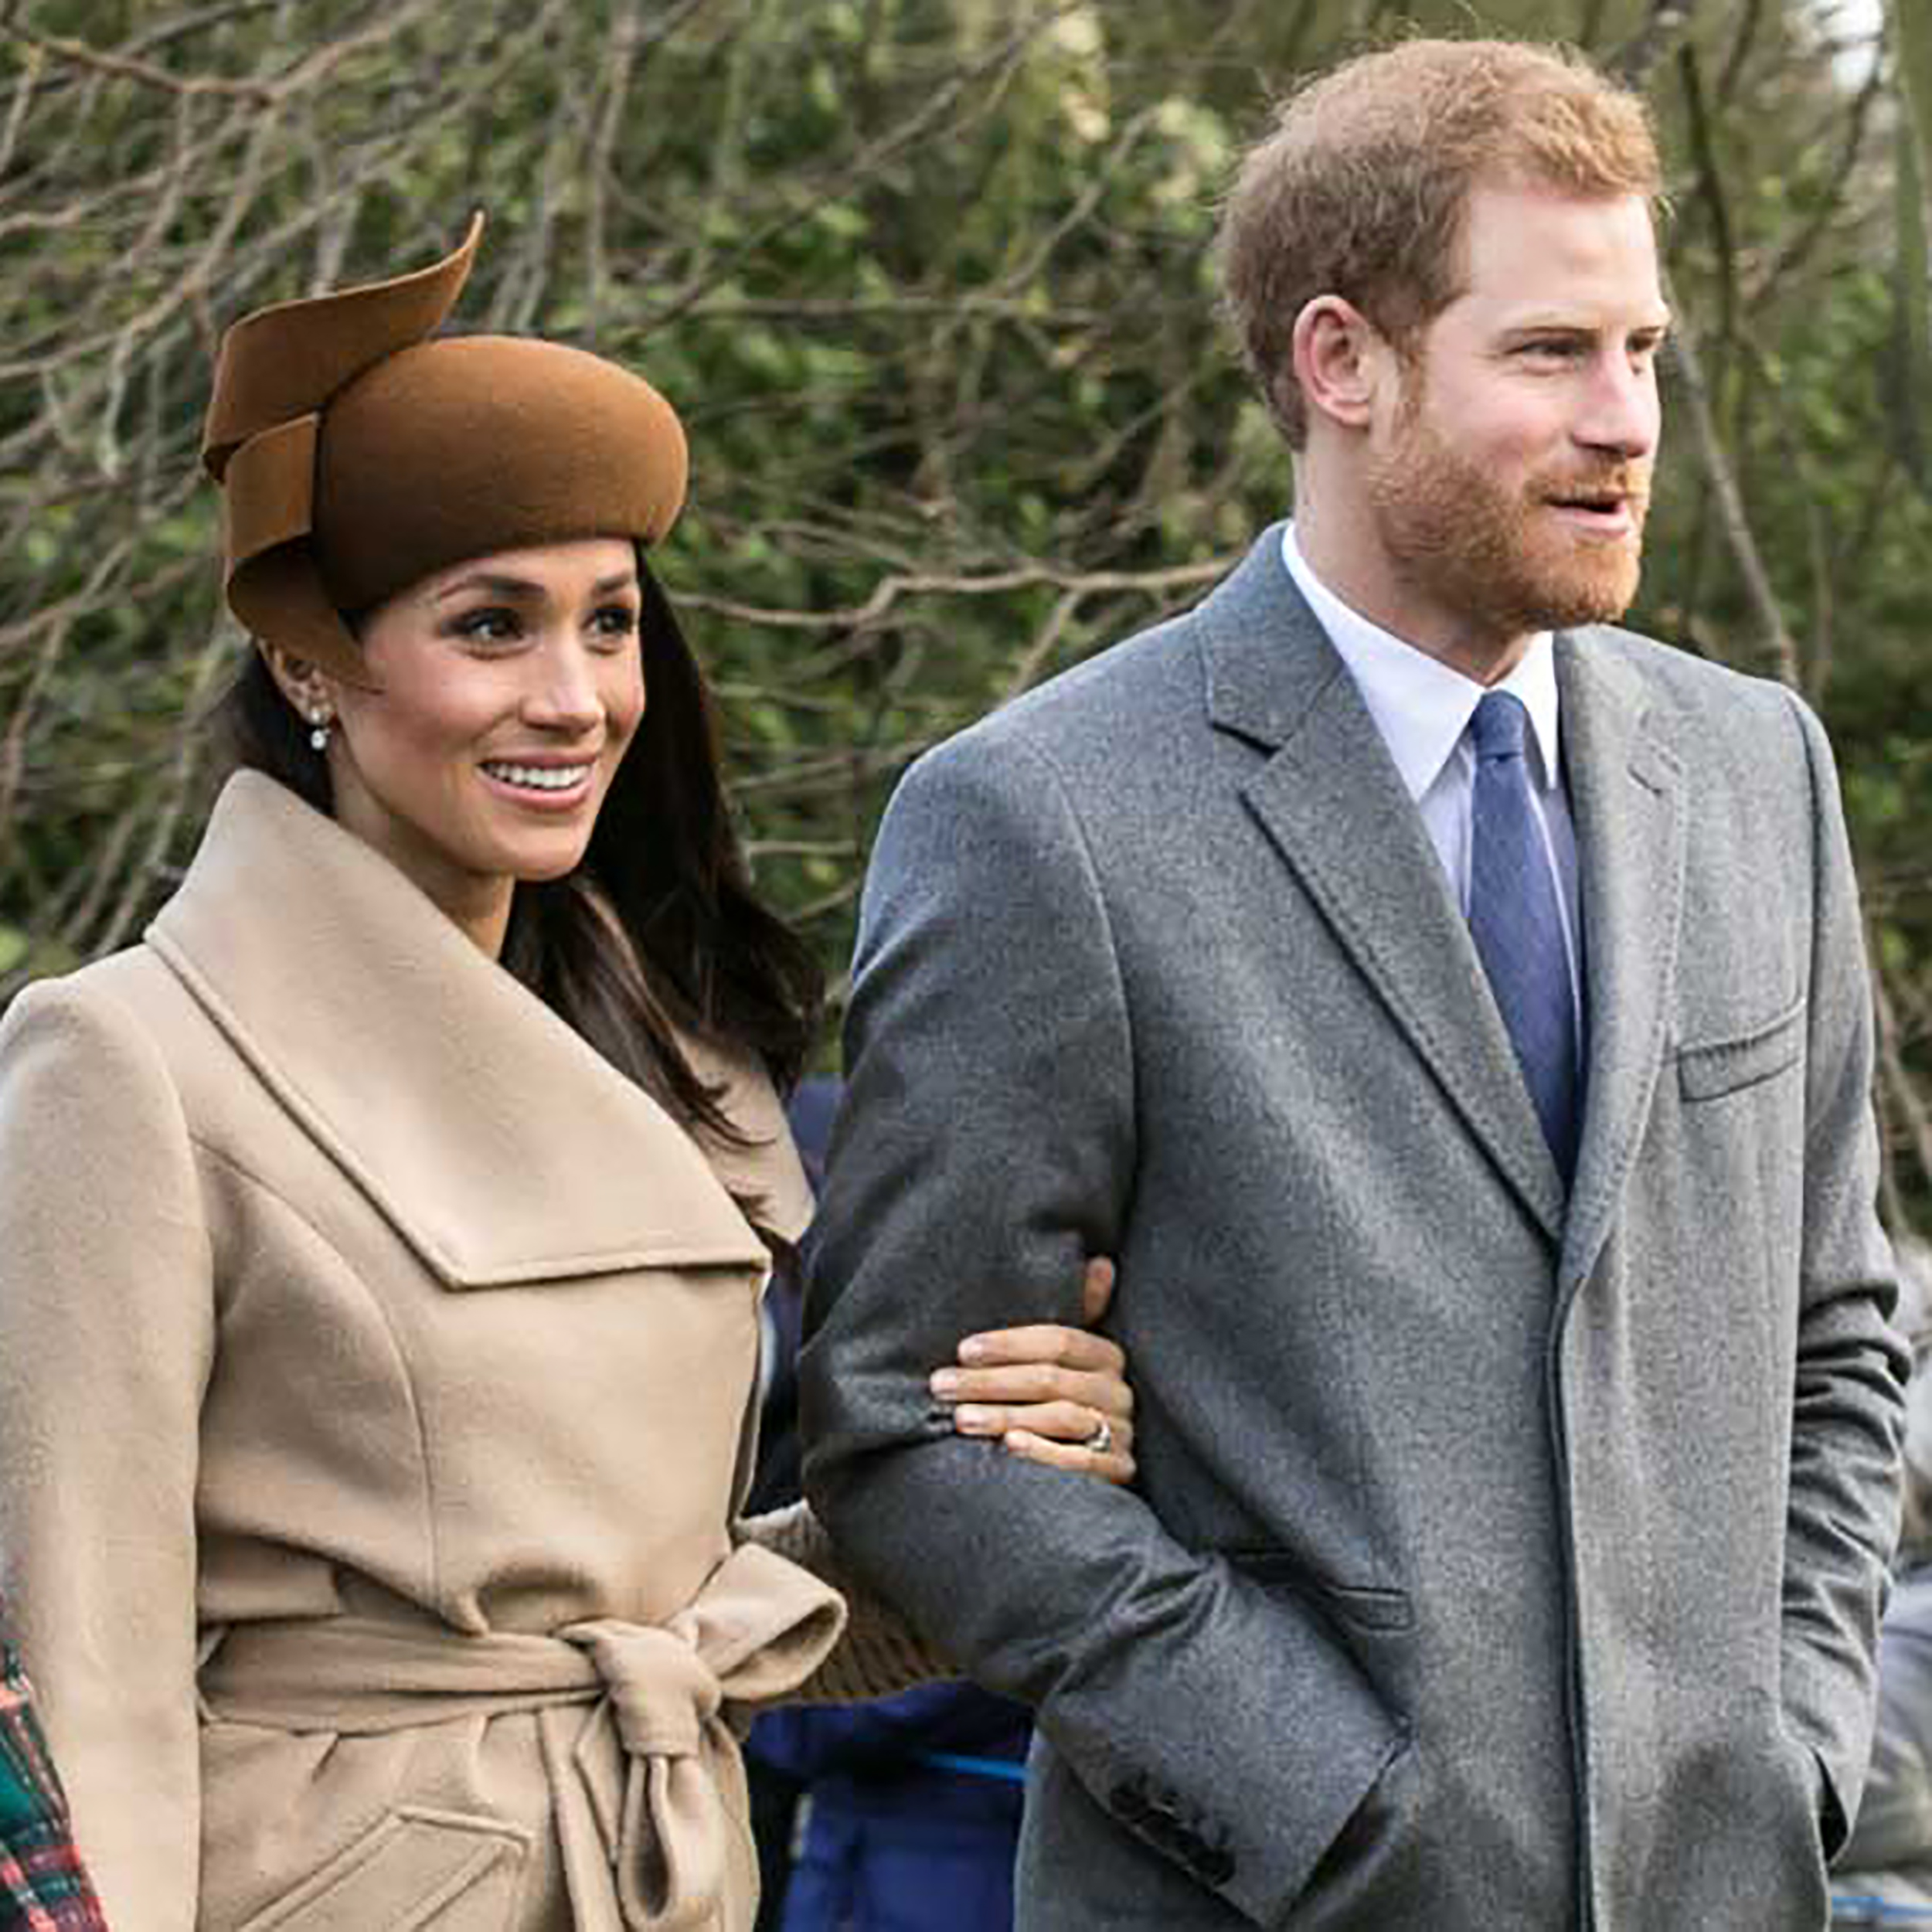 Meghan Markle (pictured left) has become the focus of even more media attention since marrying into the British royal family. The criticism directed at her has been unfair and should end (Mark Jones/Creative Commons).